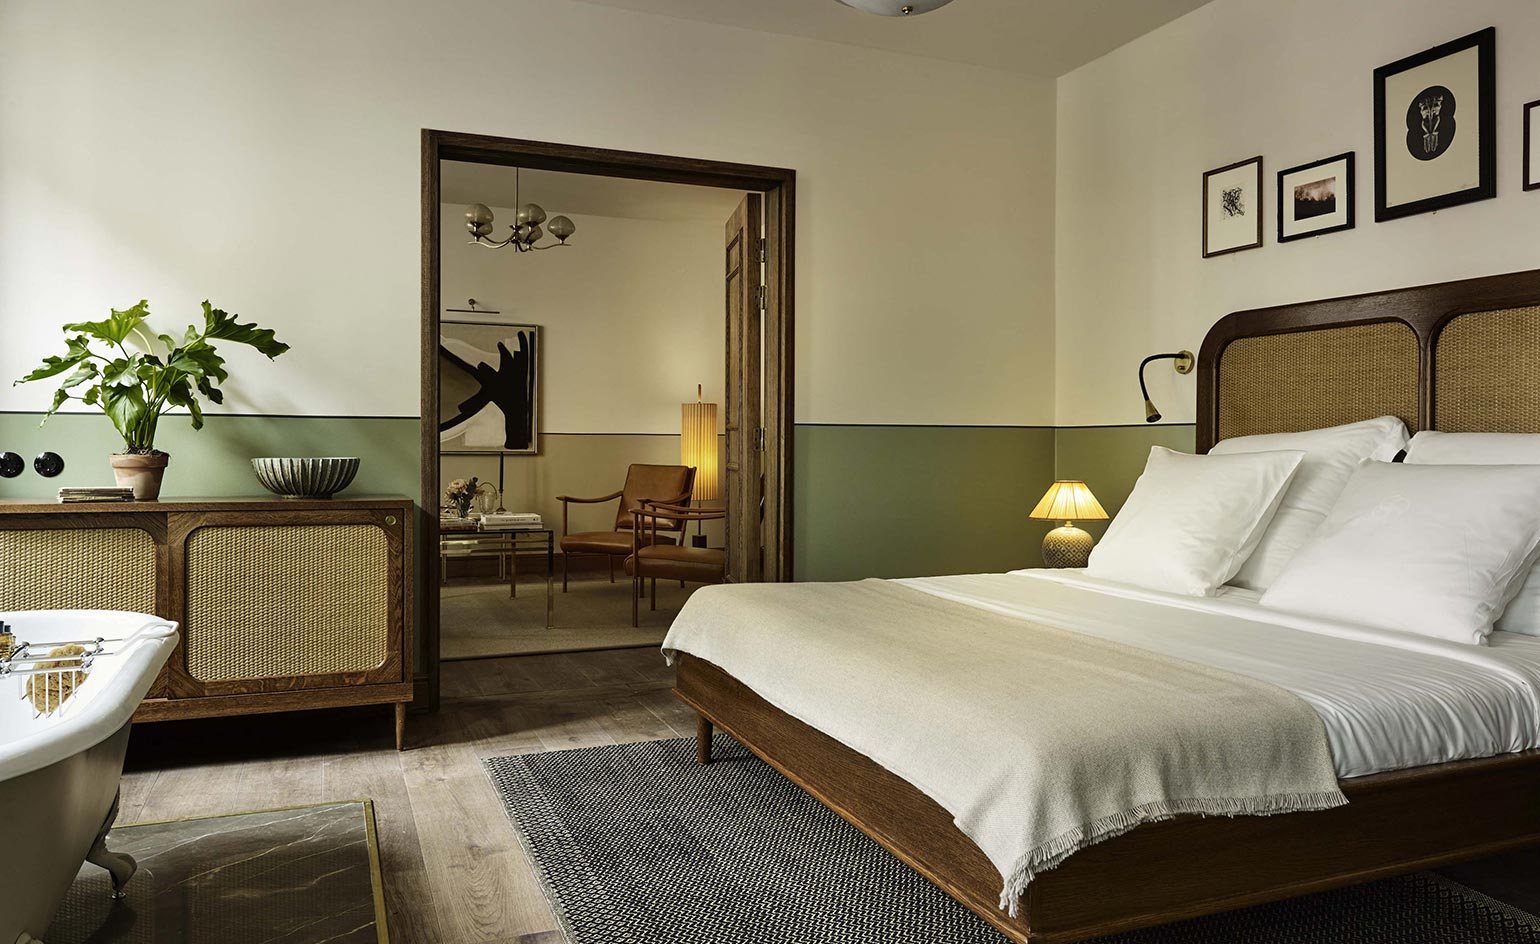 Centre stage Copenhagens first luxury boutique hotel